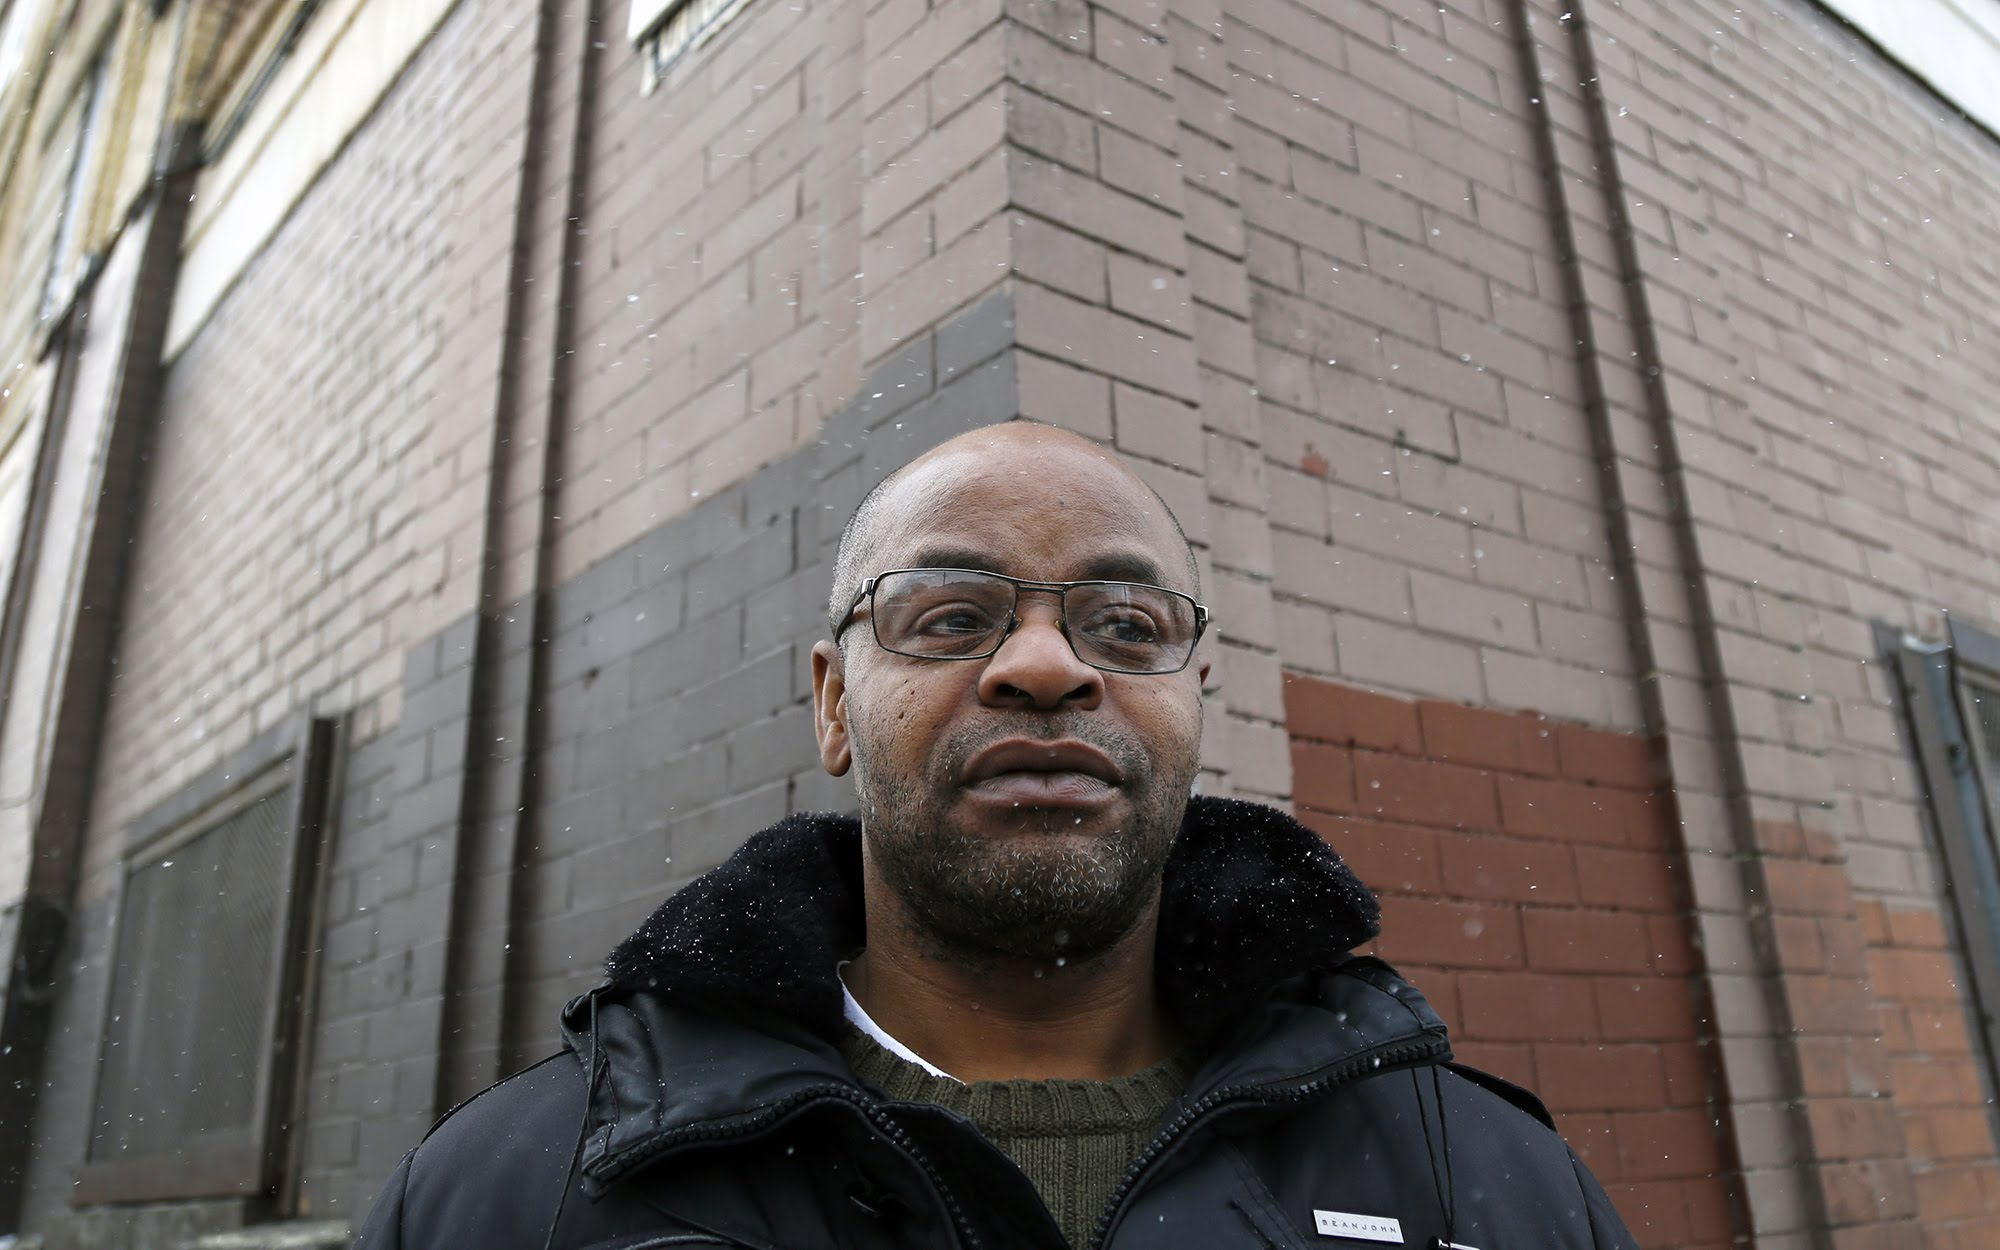 Tyrone Goodwin, 52, outside his apartment building in Homewood. (Photo by Ryan Loew/PublicSource)